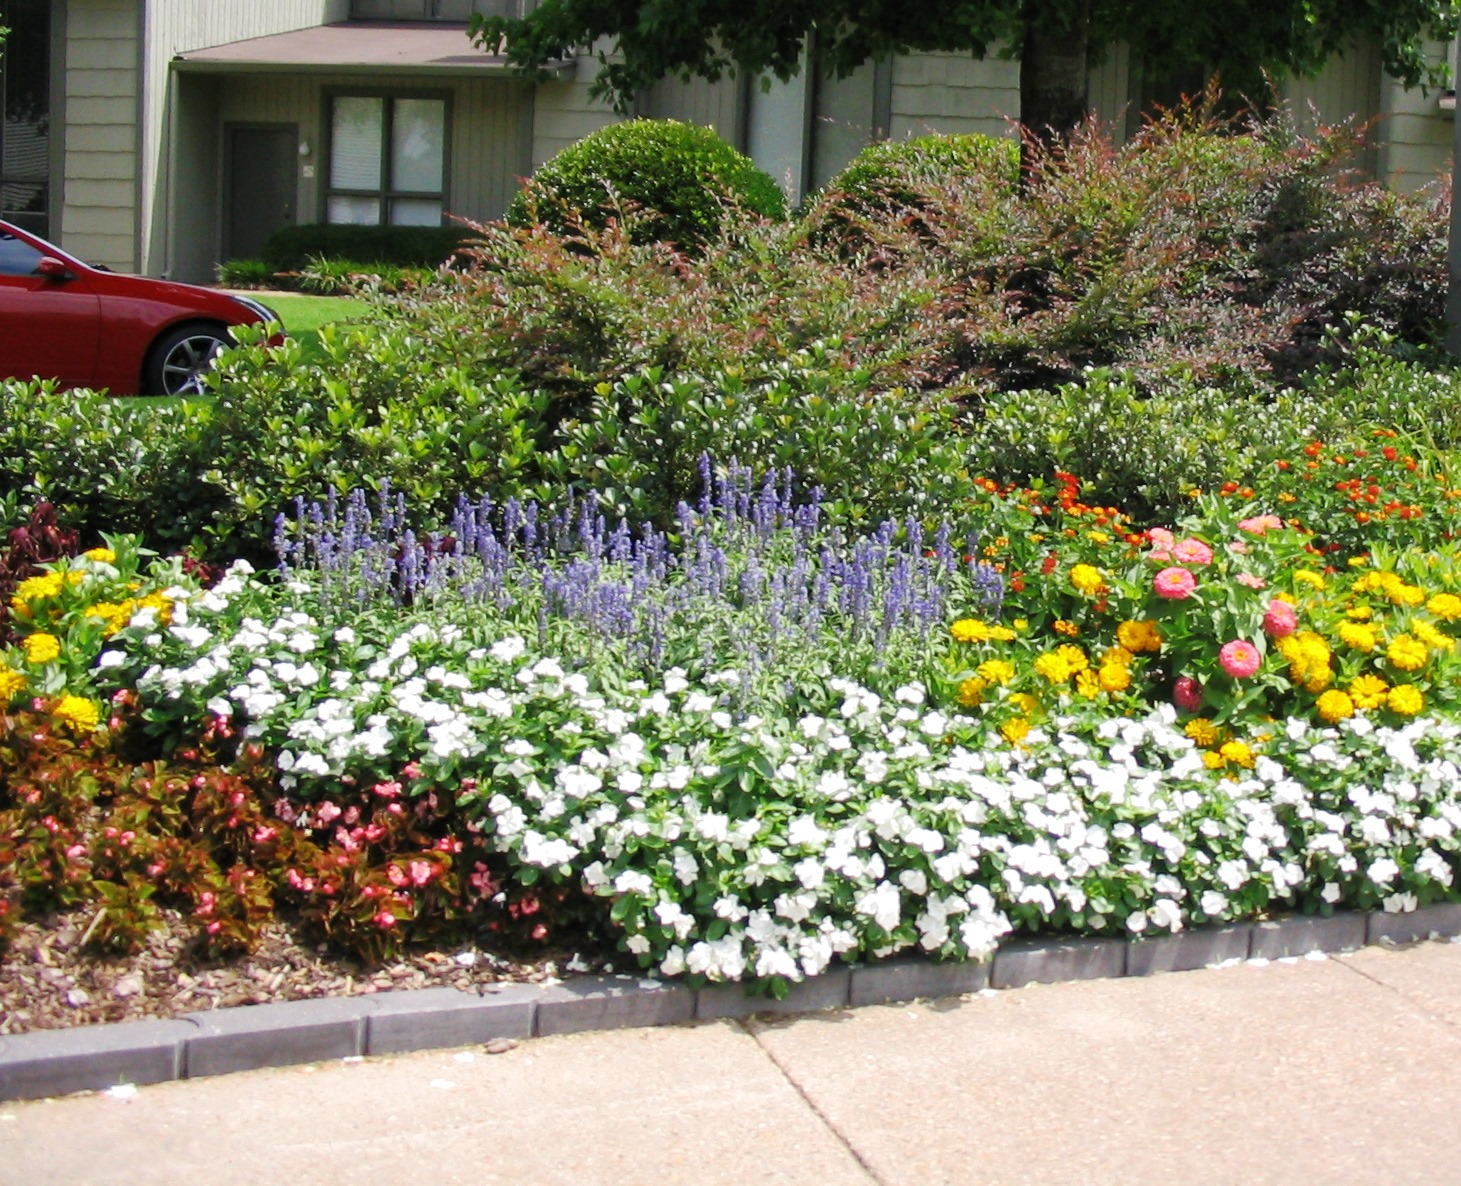 Plants for spring and summer - Summer Bedding Plants